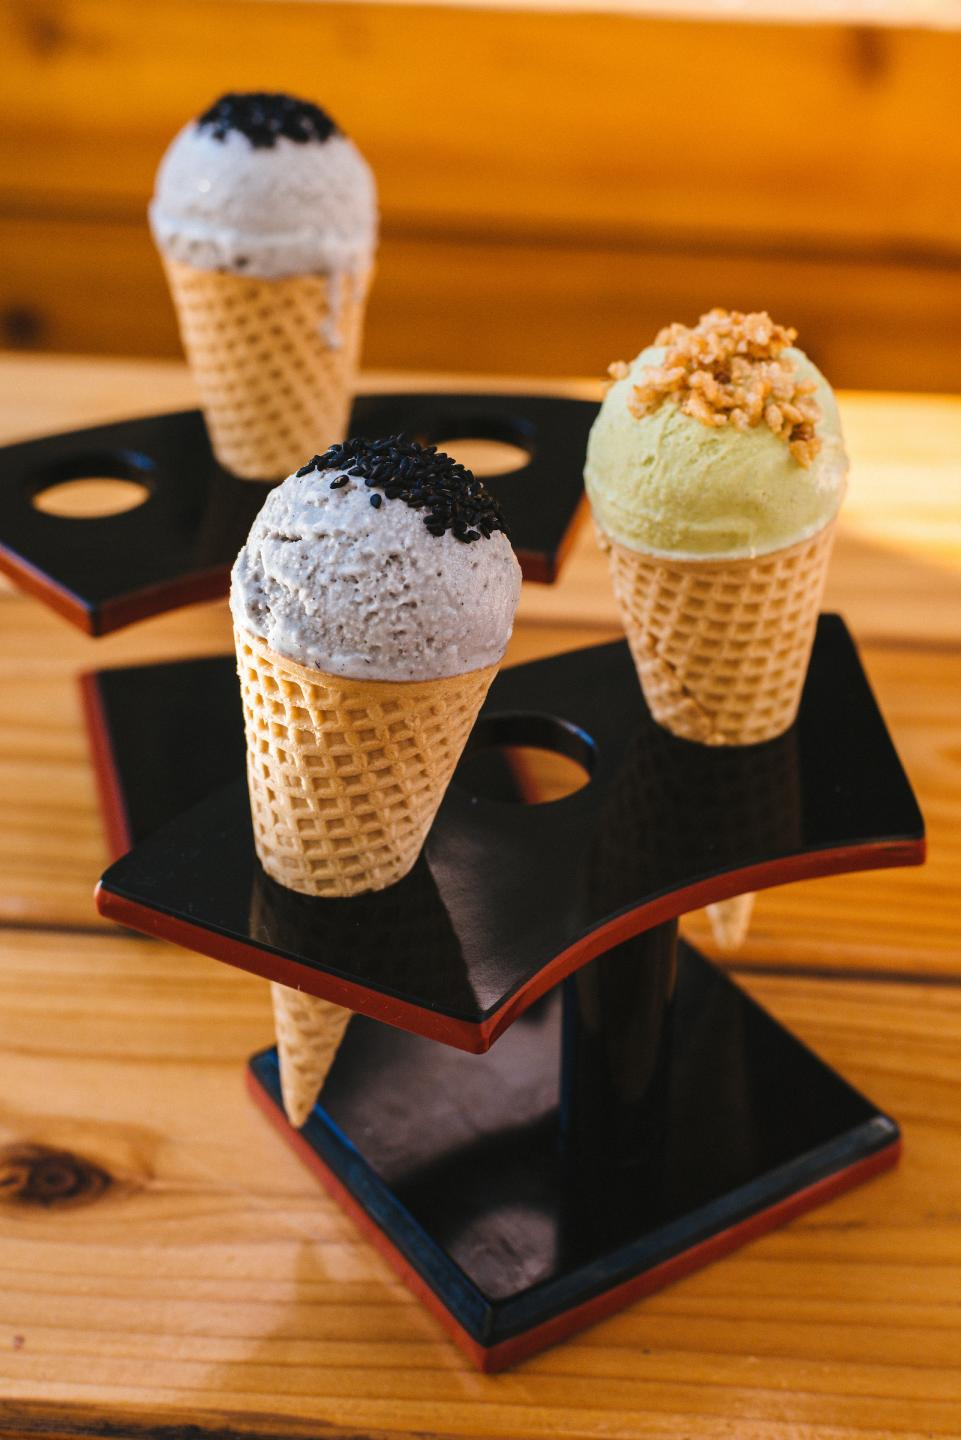 Mini ice cream cones from Ramen-san